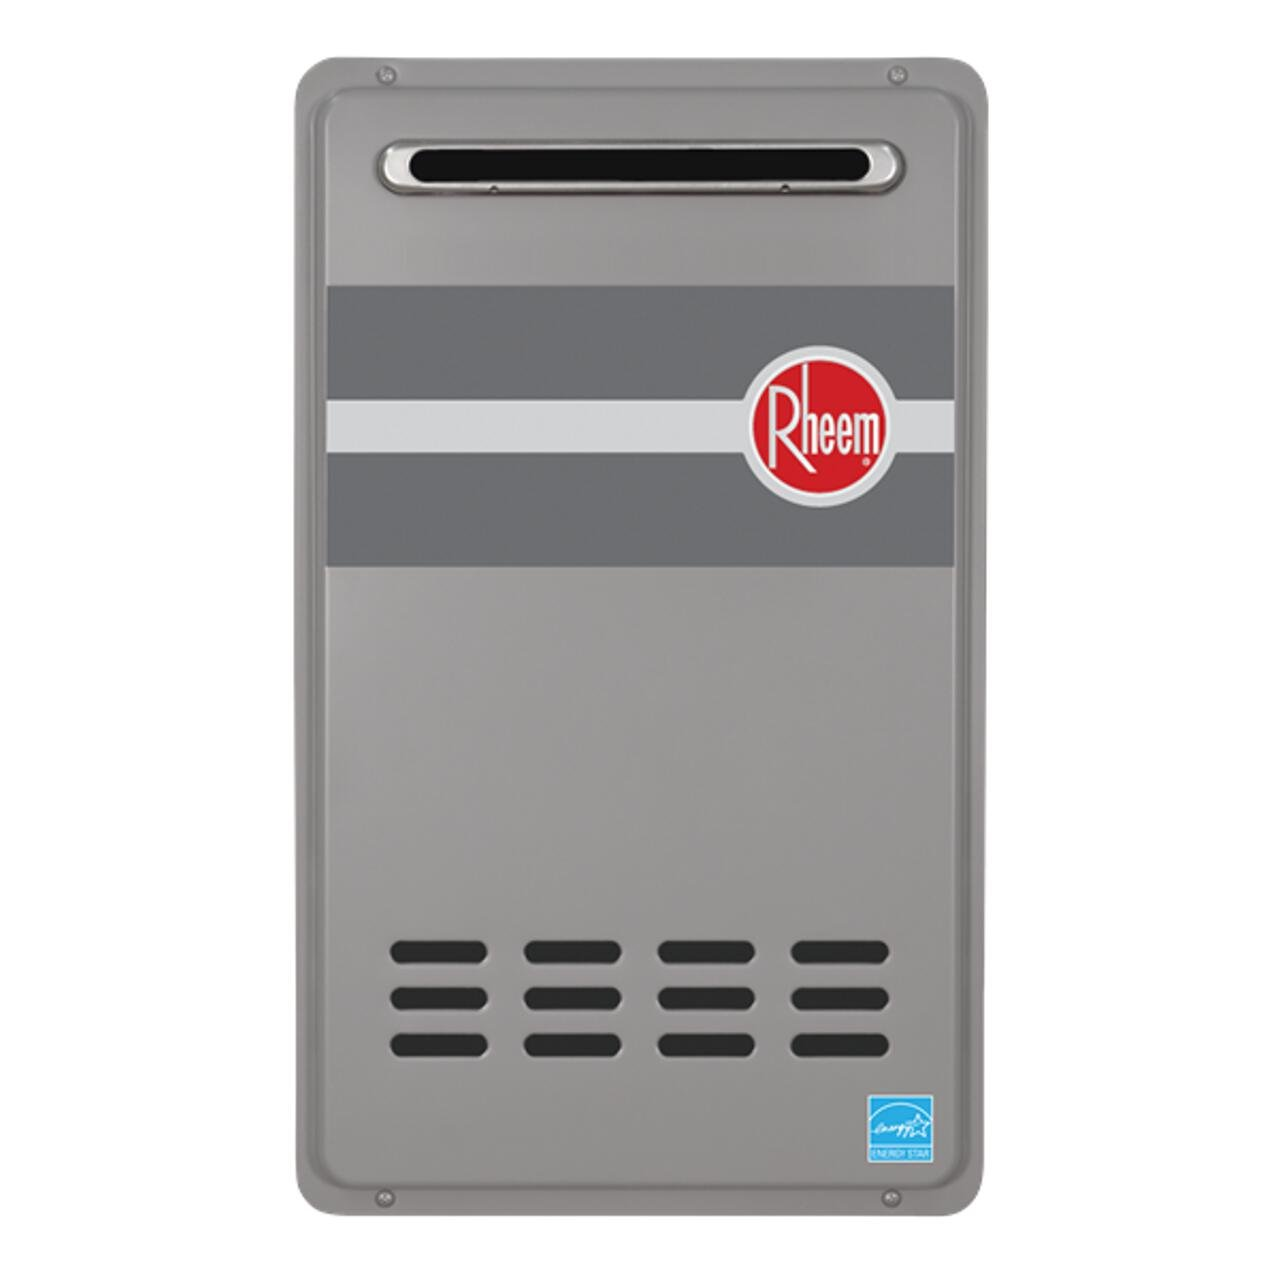 Rheem RTG-84XLP 8.4 GPM Low NOx Outdoor Tankless Propane Water Heater